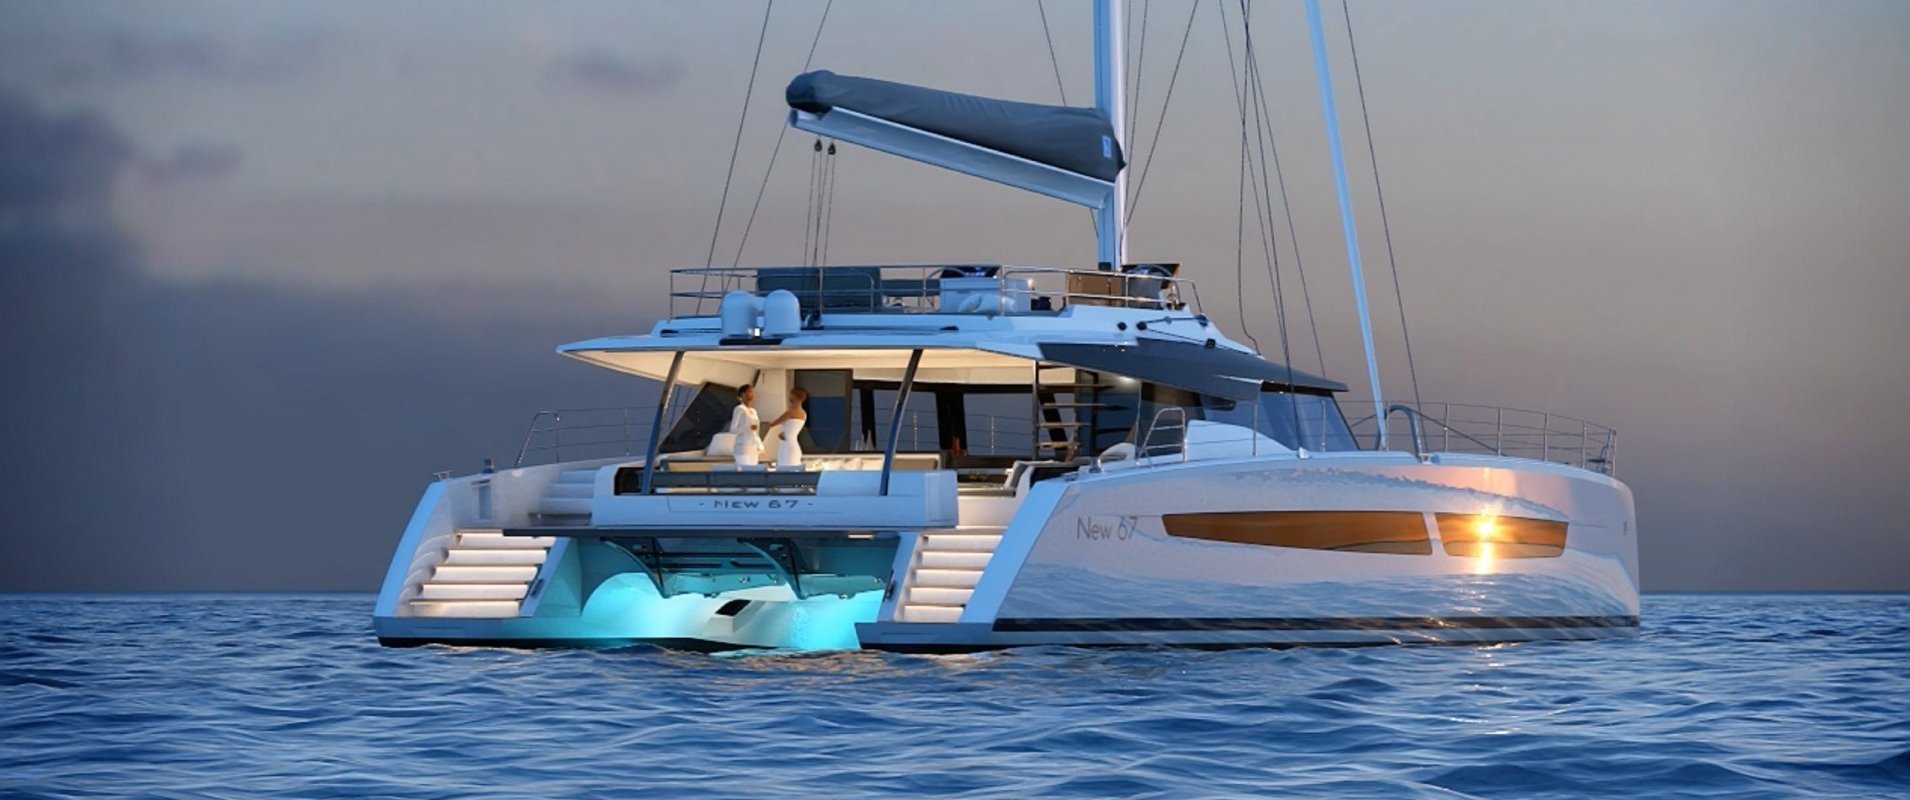 Charter Home And Office Furniture Images Gallery. 100 62 Best Catamarans  Images On Lagoon 42 Catamaran